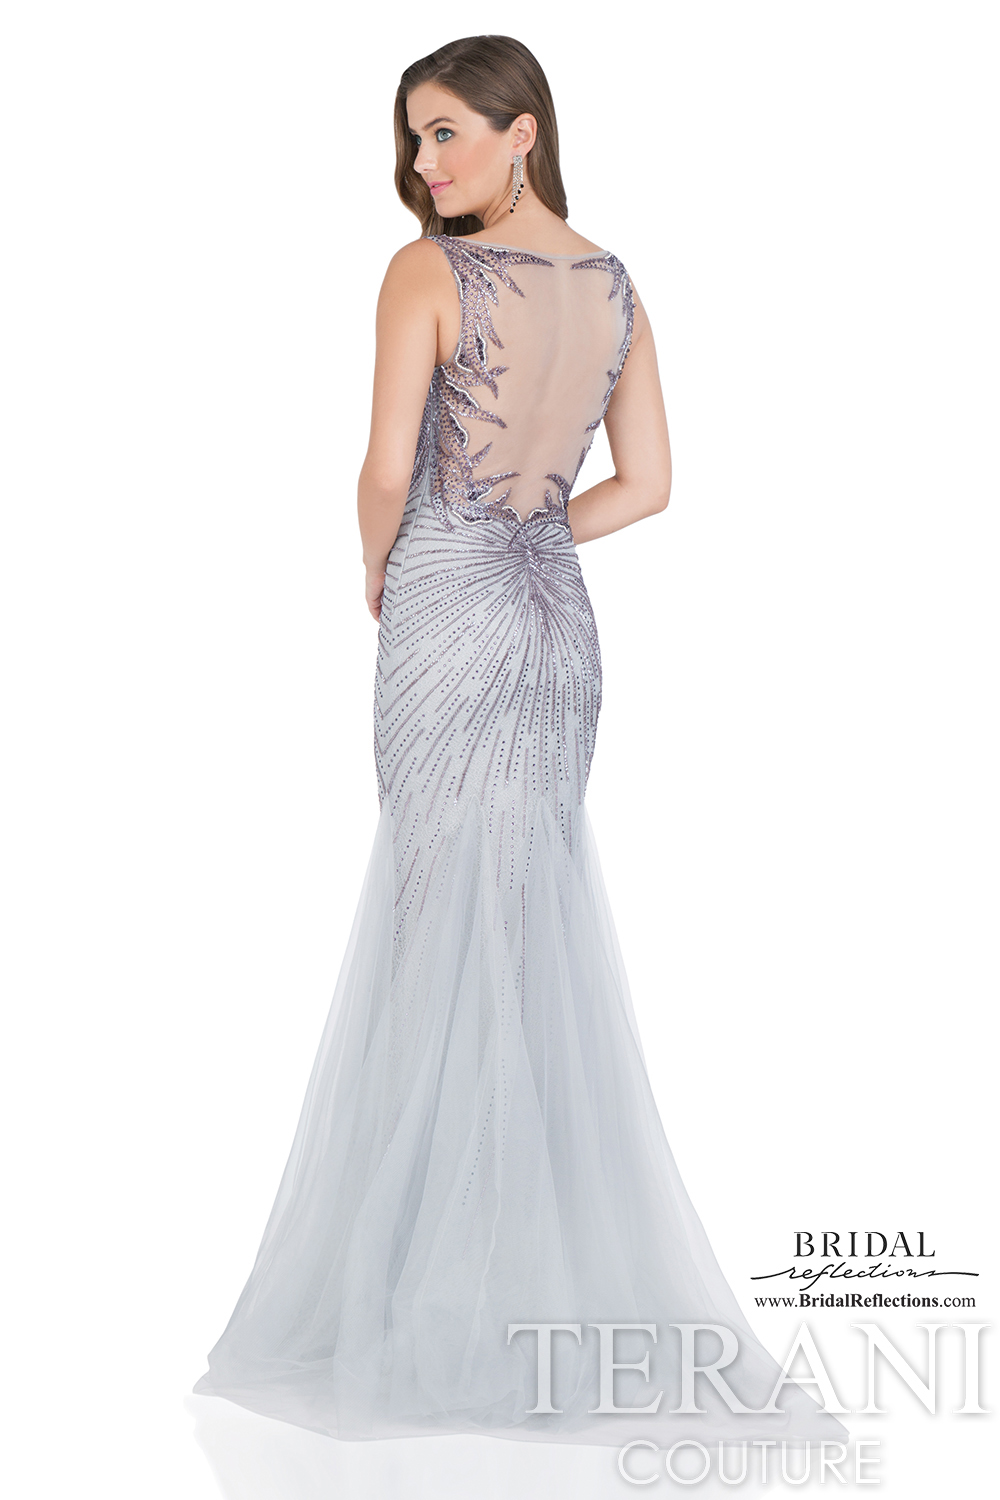 Terani couture wedding evening dress and gowns collection for Terani couture wedding dresses